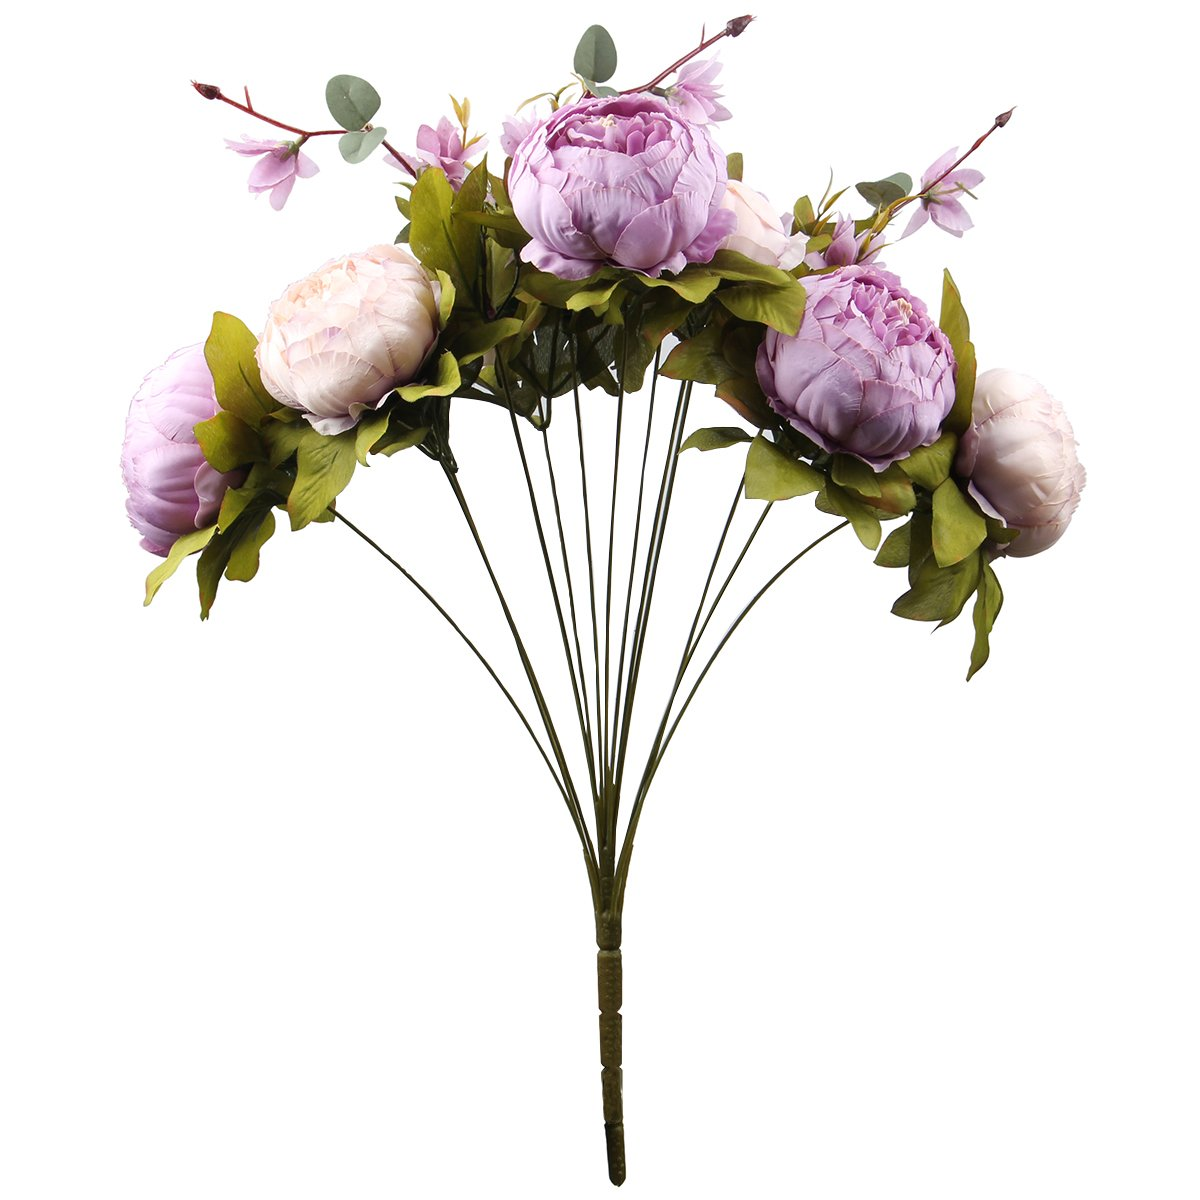 Leagel fake flowers vintage artificial peony silk flowers bouquet leagel fake flowers vintage artificial peony silk flowers bouquet wedding home decoration pack of 1 new izmirmasajfo